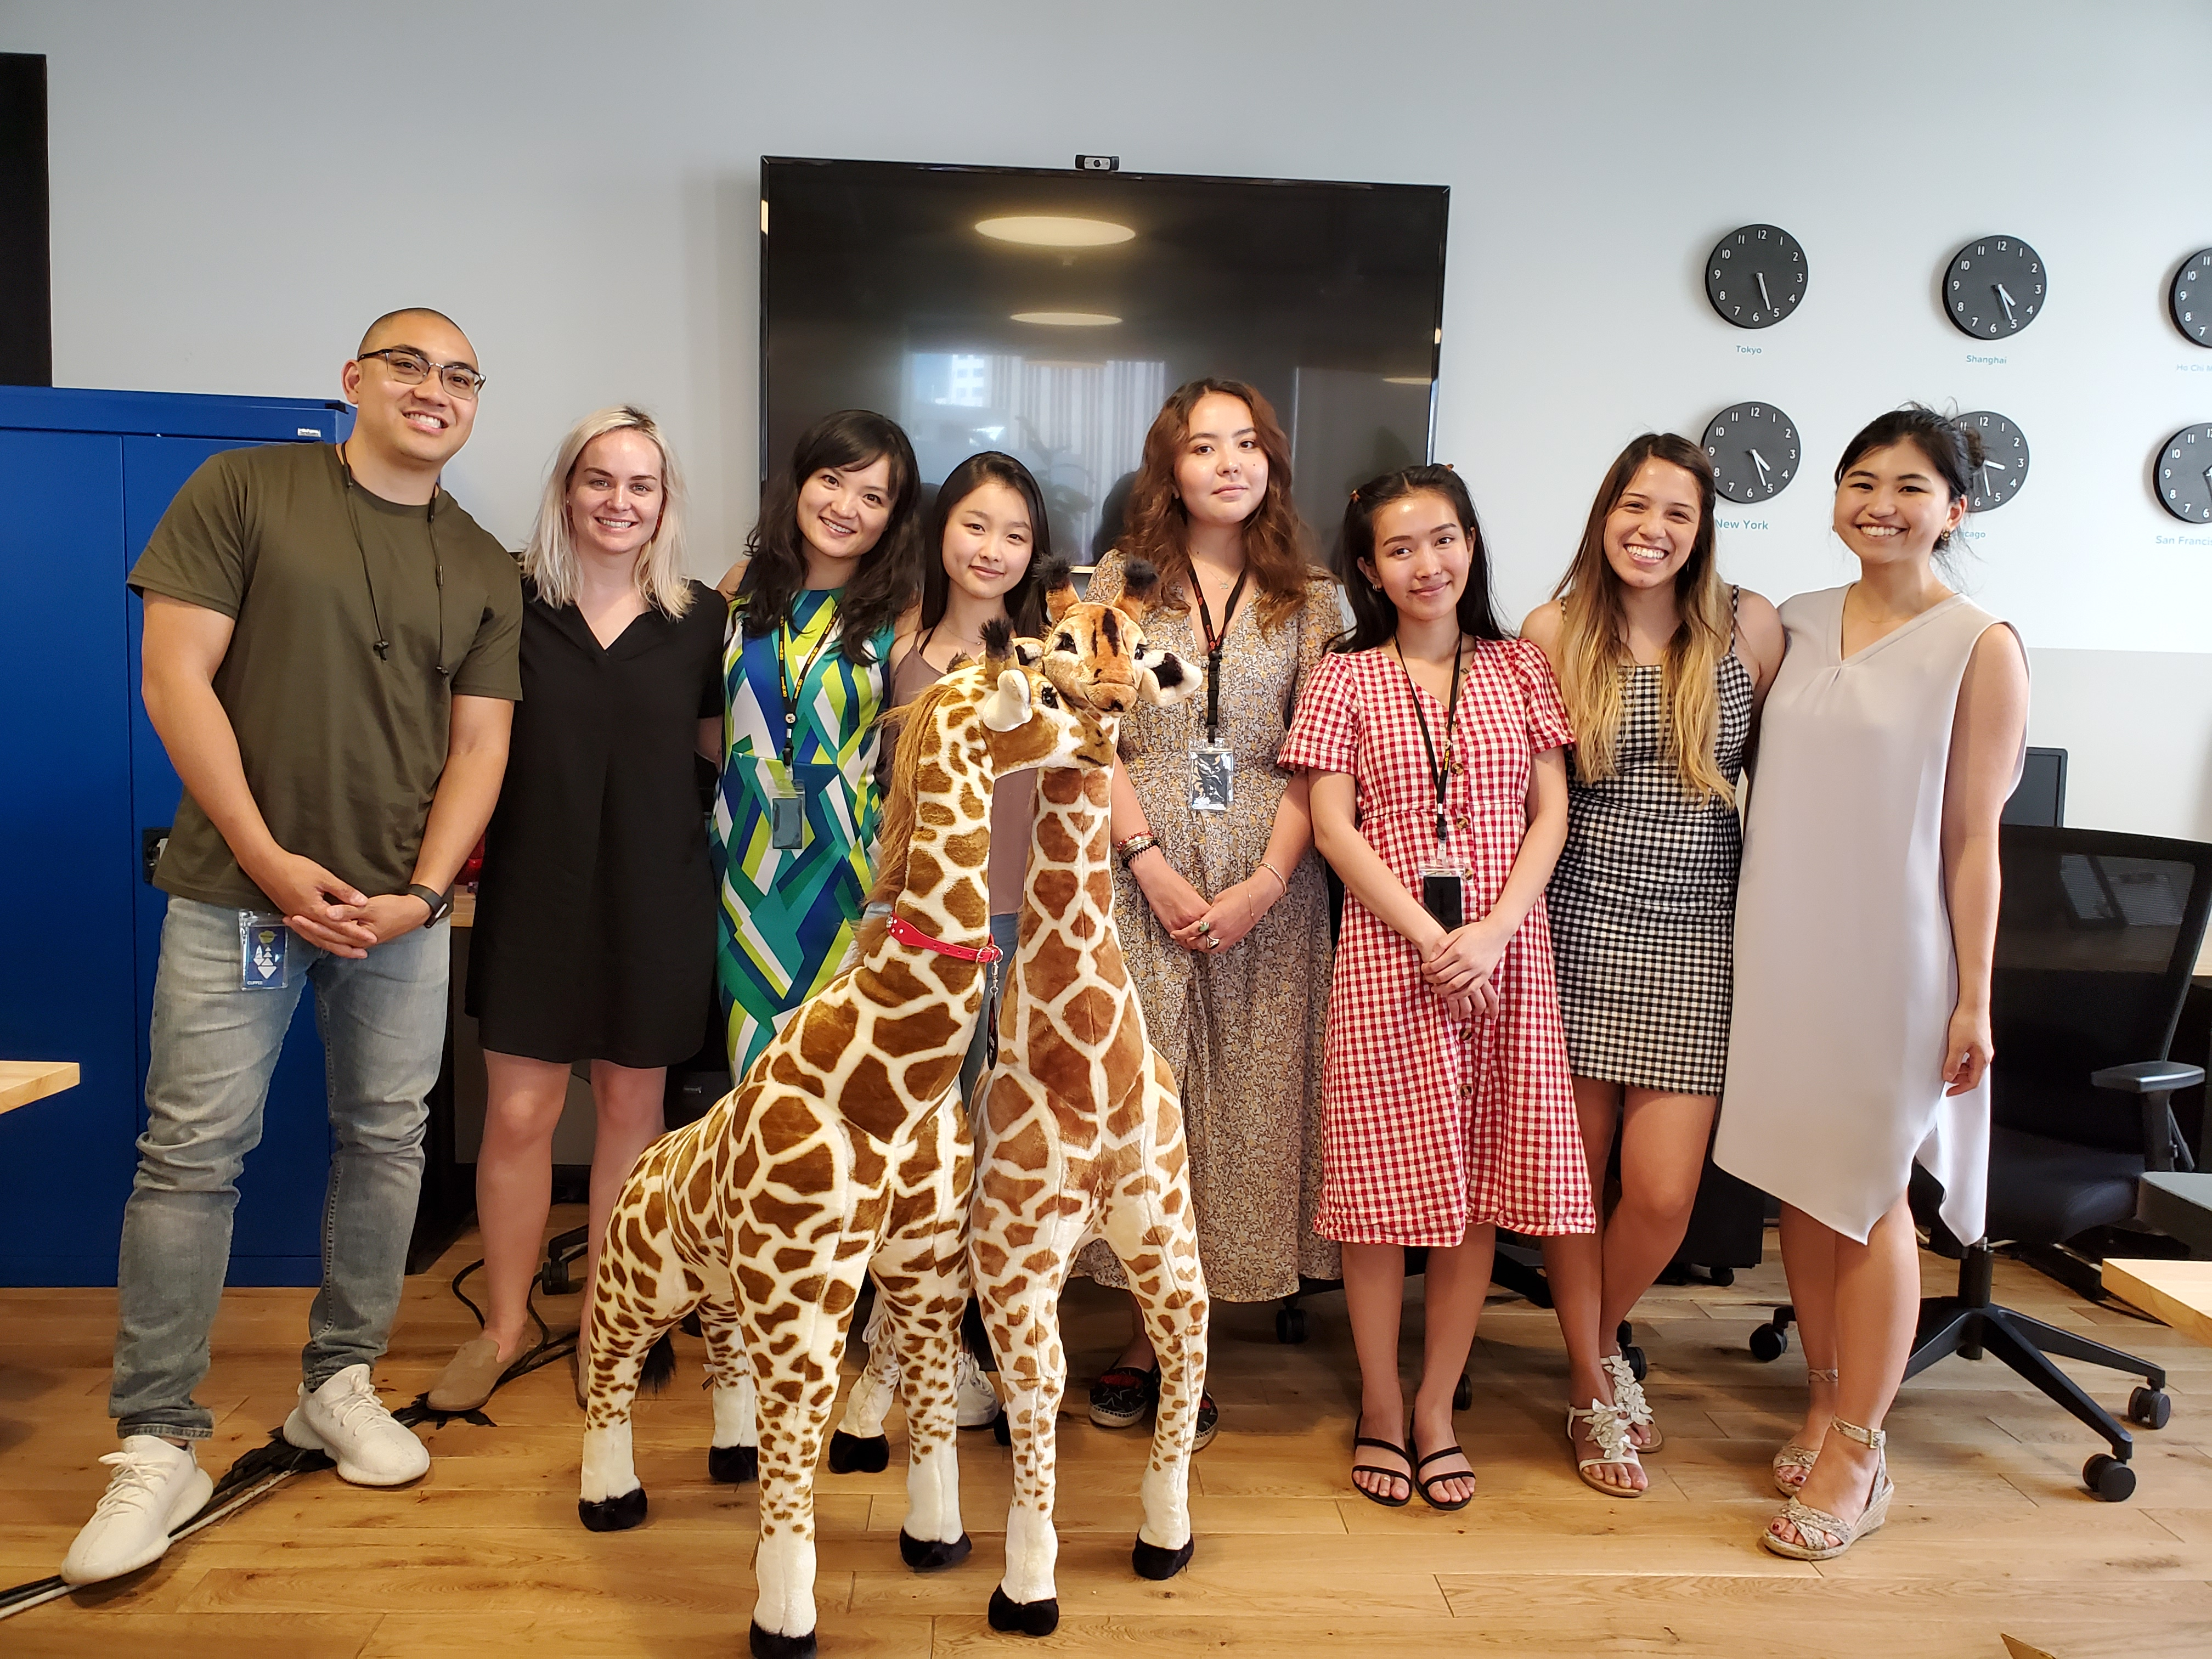 San Francisco Tech Startup Kintone Intern Eve with Marketing Team